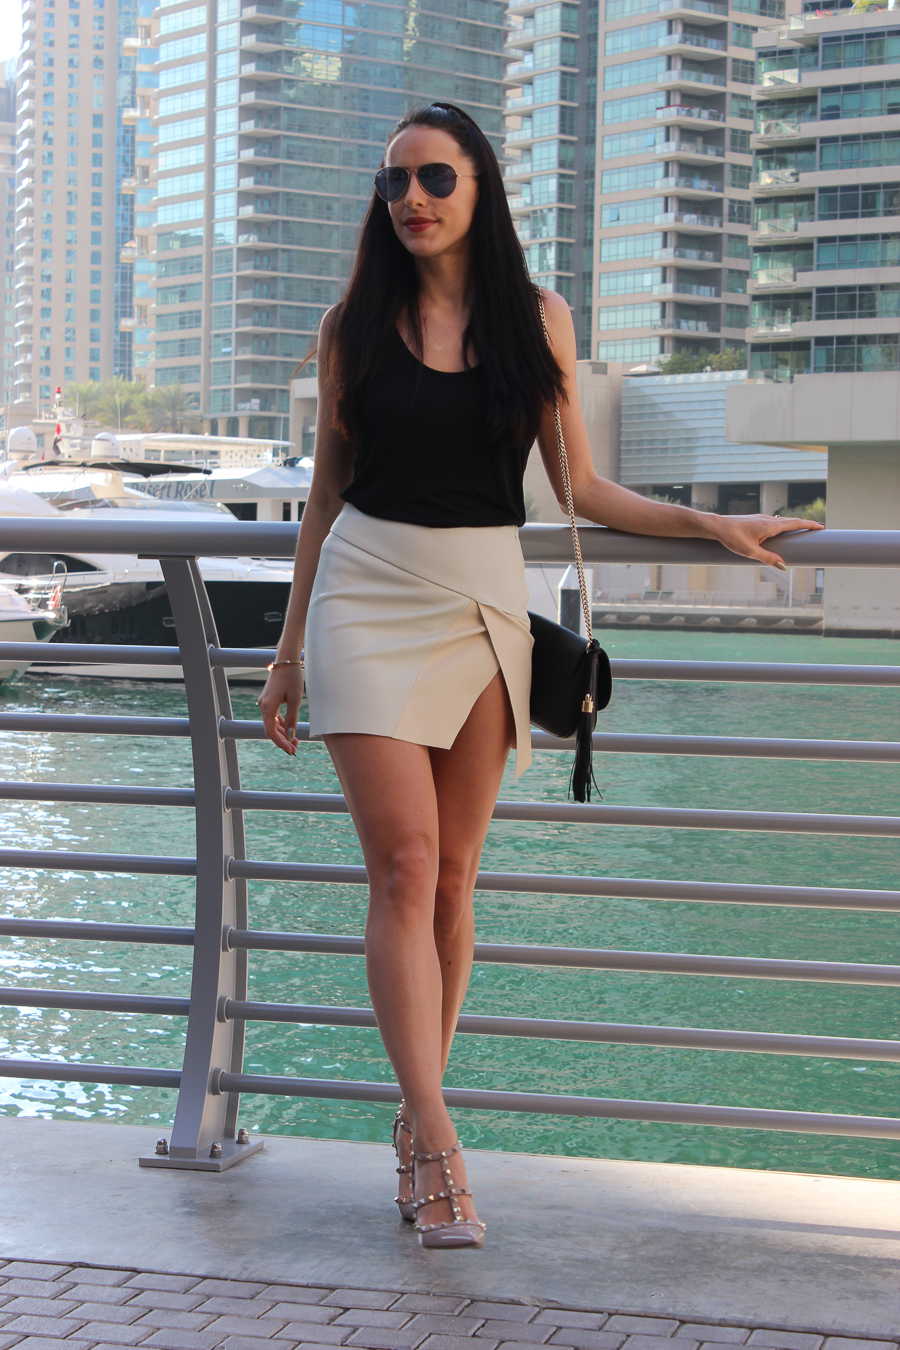 clutch and carry on - uk travel blogger - dubai travel blog - sabrina chakici -_-101